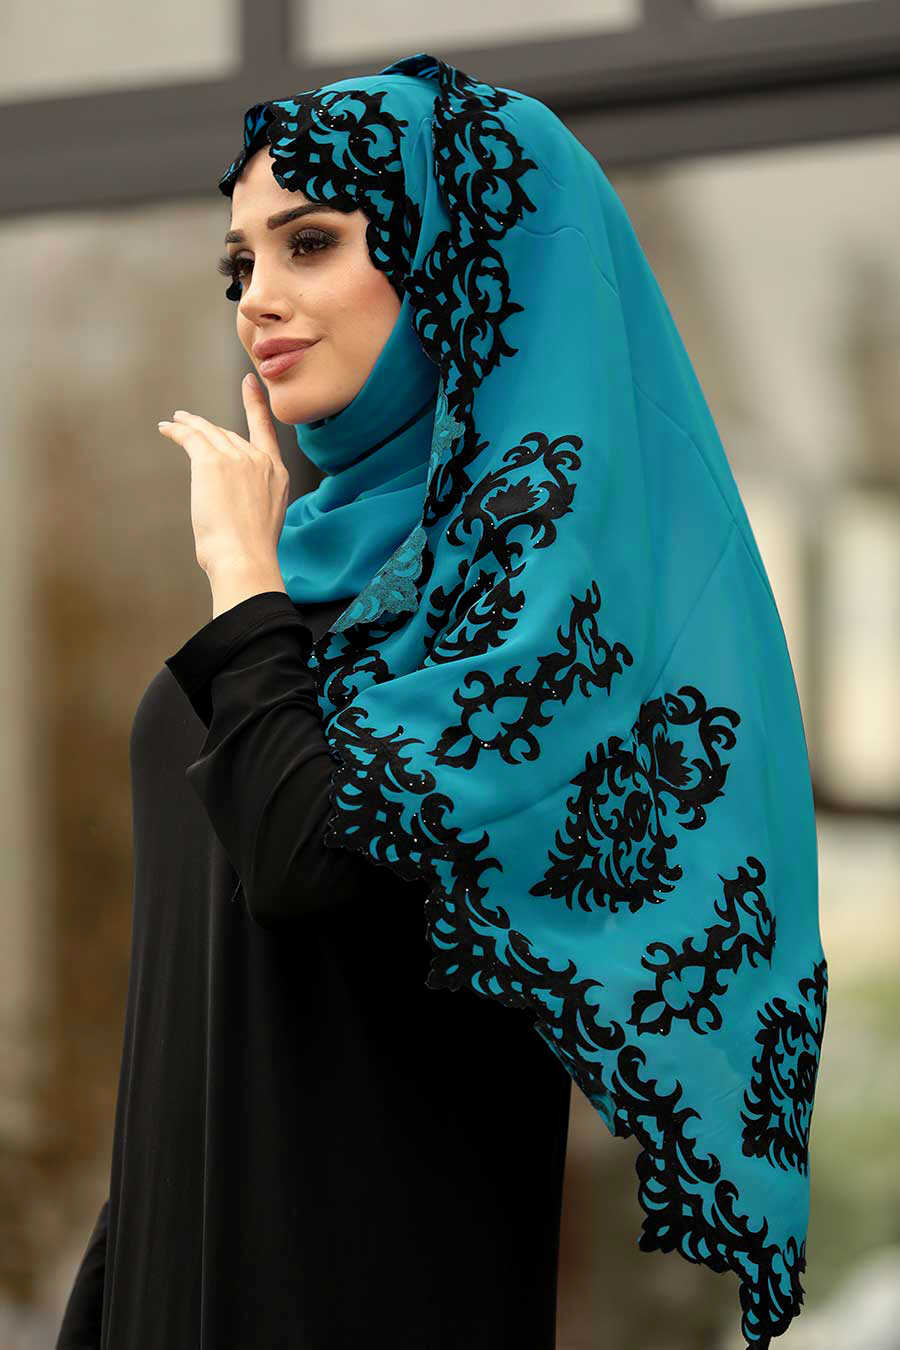 Petrol Blue Hijab Shawl 7493PM